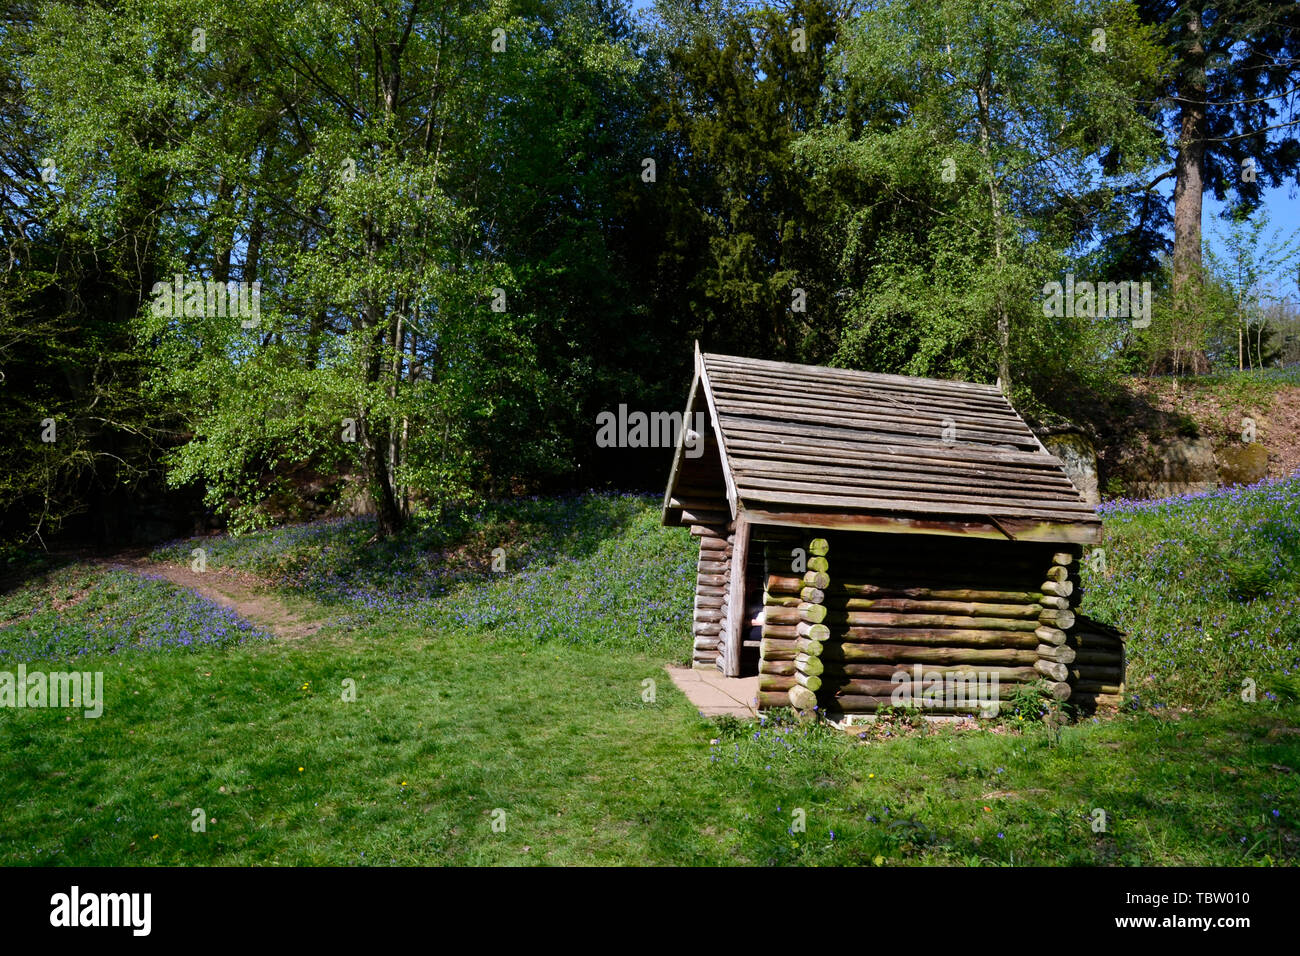 Summer House among the bluebells at Wakehurst Gardens, East Sussex, UK - Stock Image